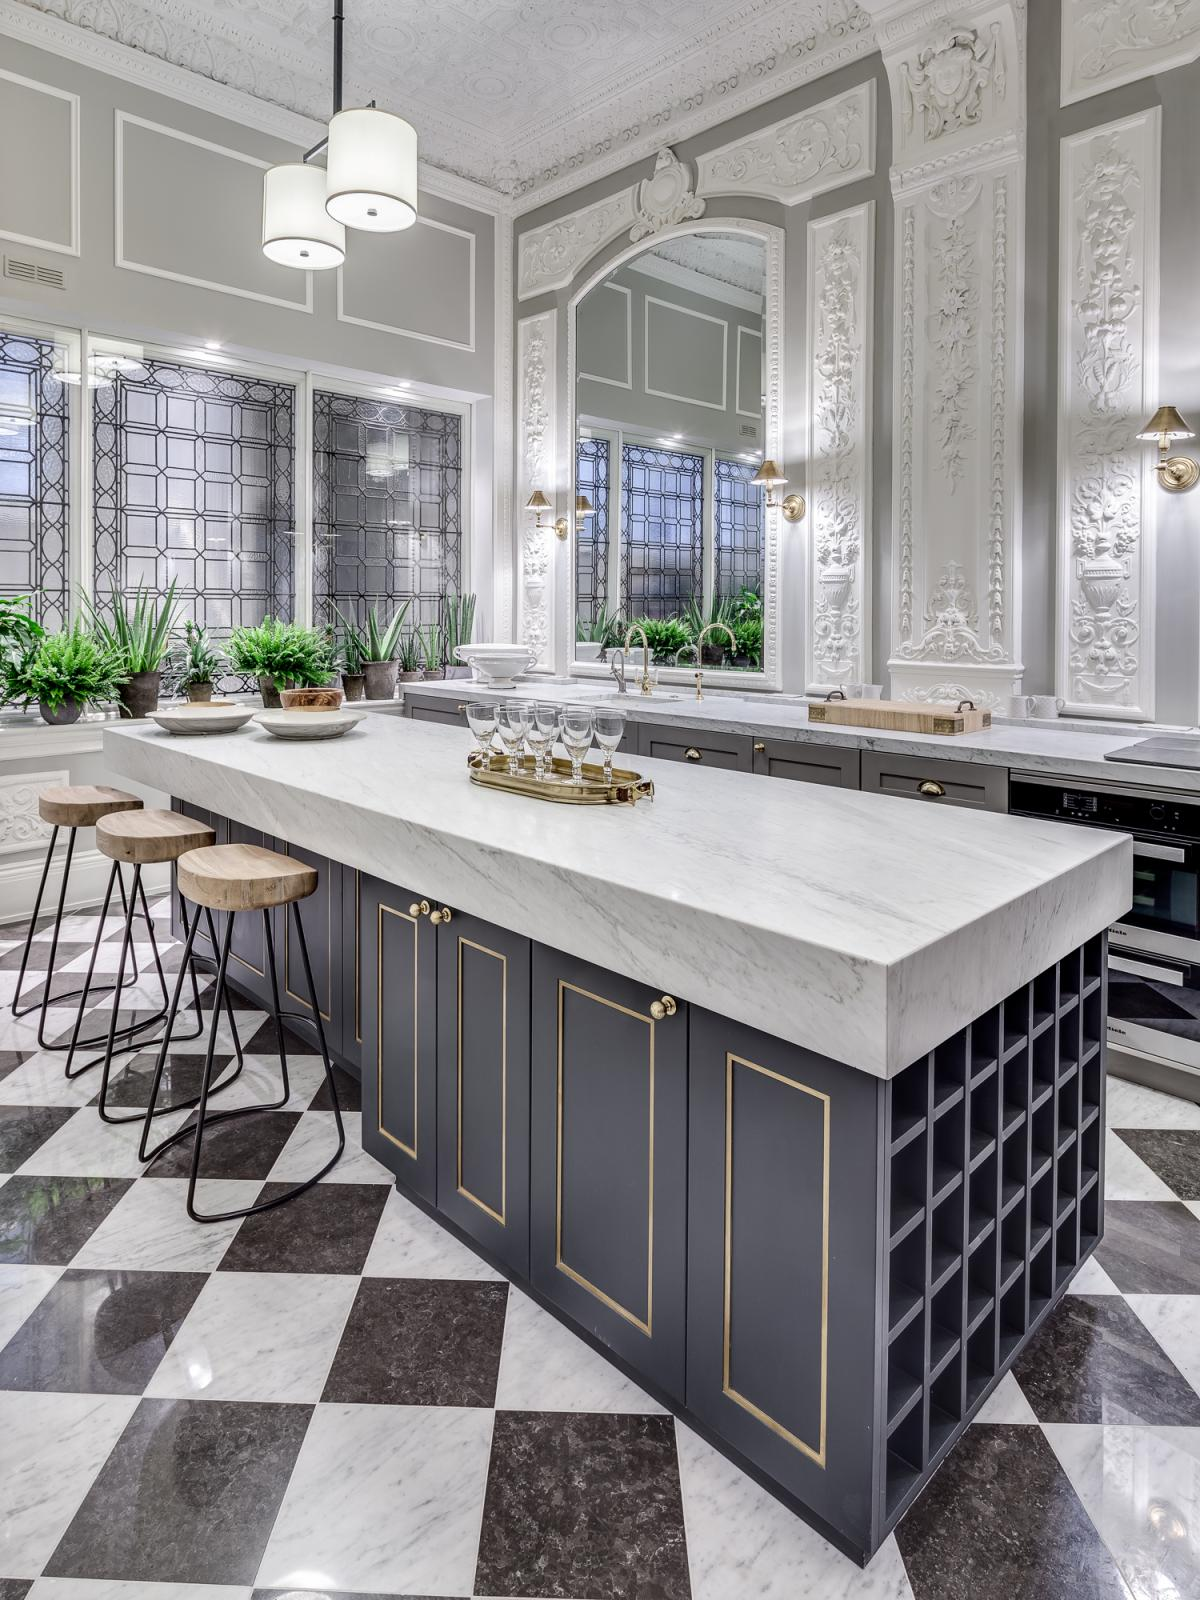 Variety of Kitchen Set Design Ideas Which Looks So Awesome With ...